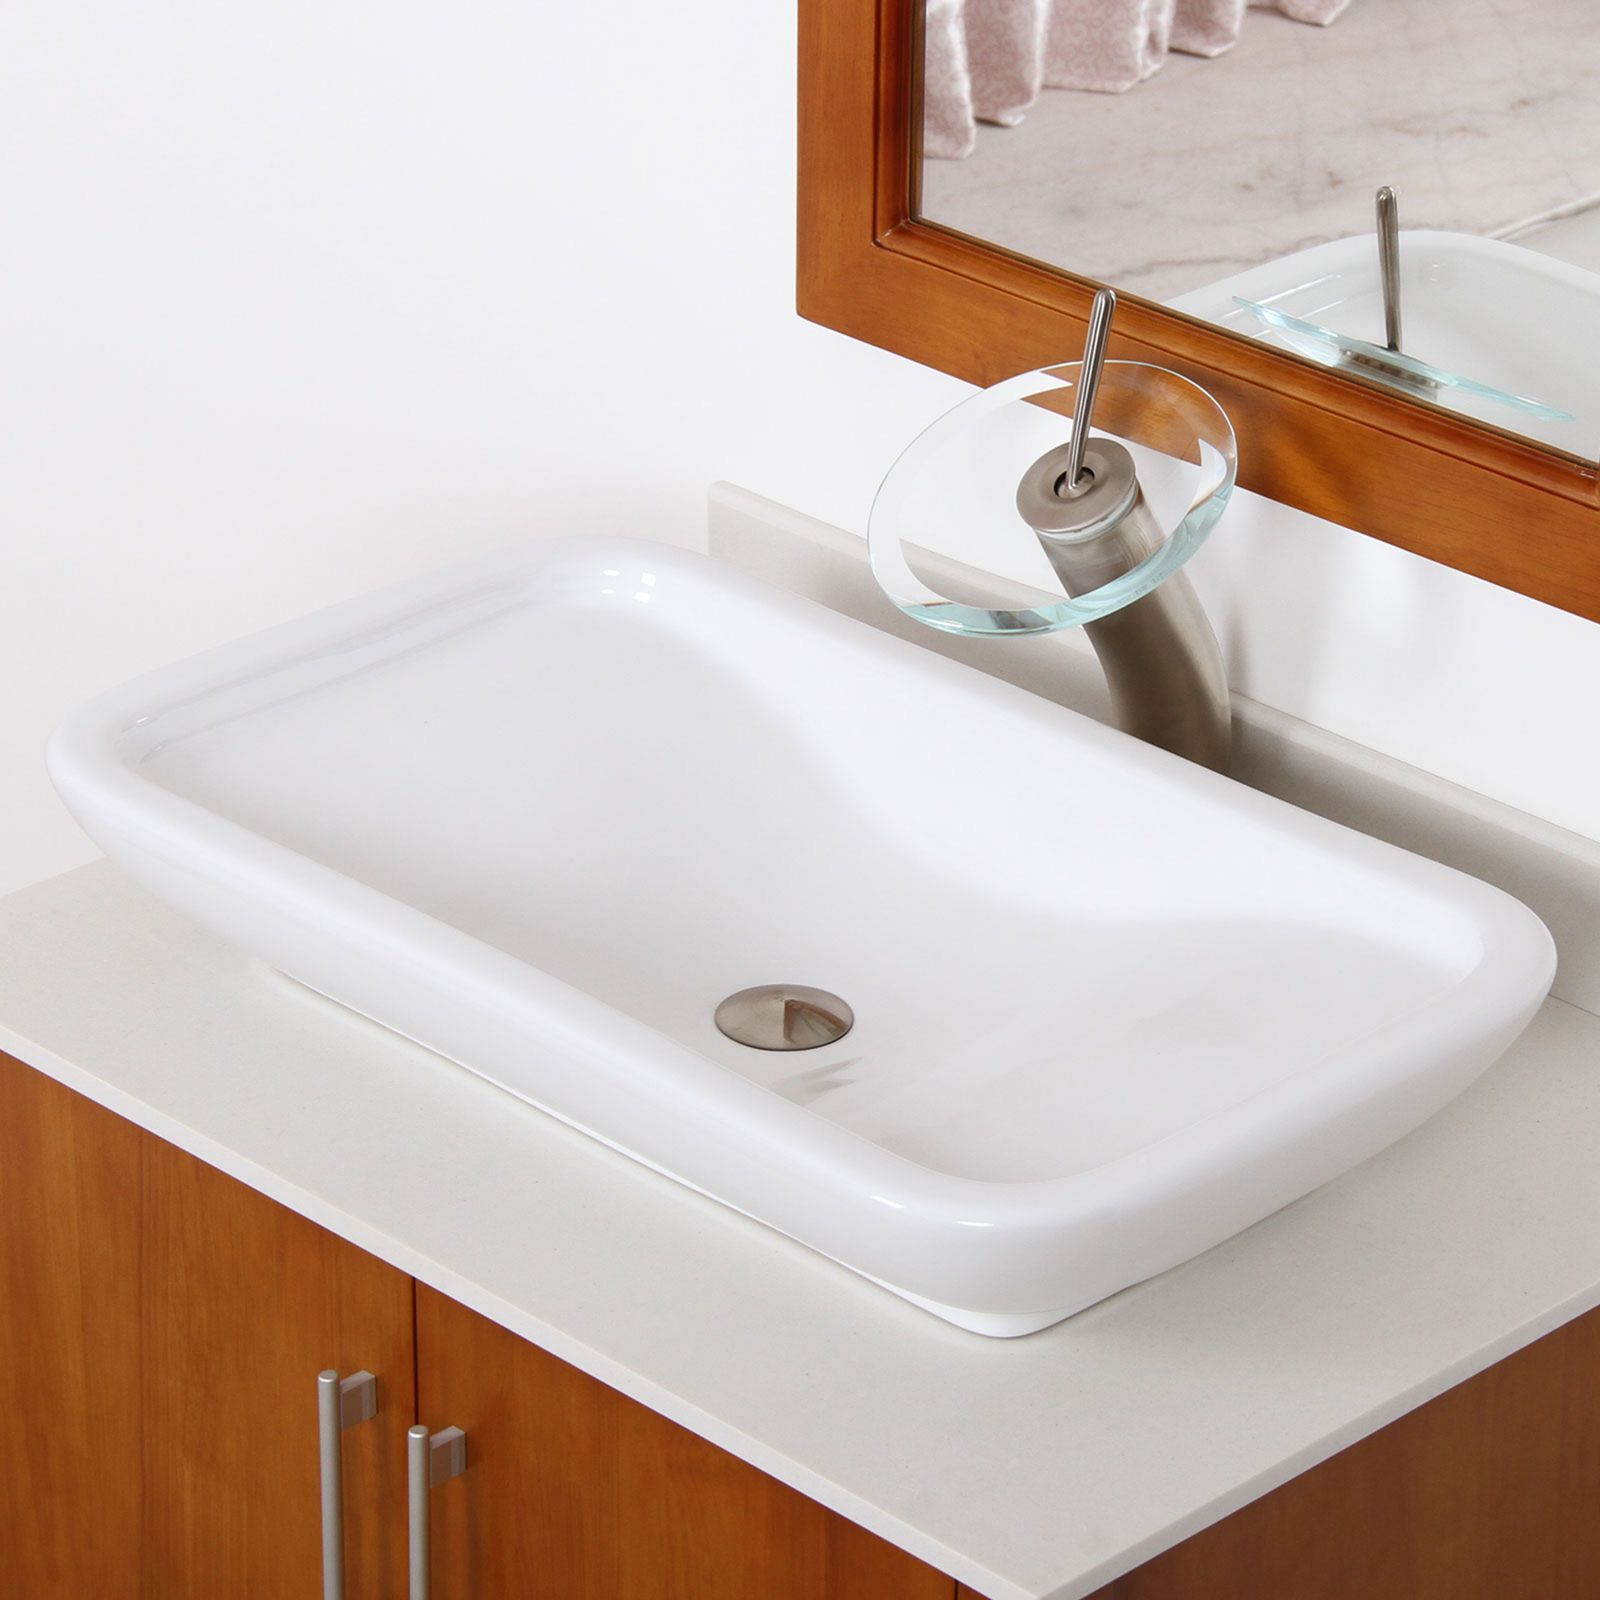 Inspiring 20 Most Unique Sinks Design Ideas You Have To ...